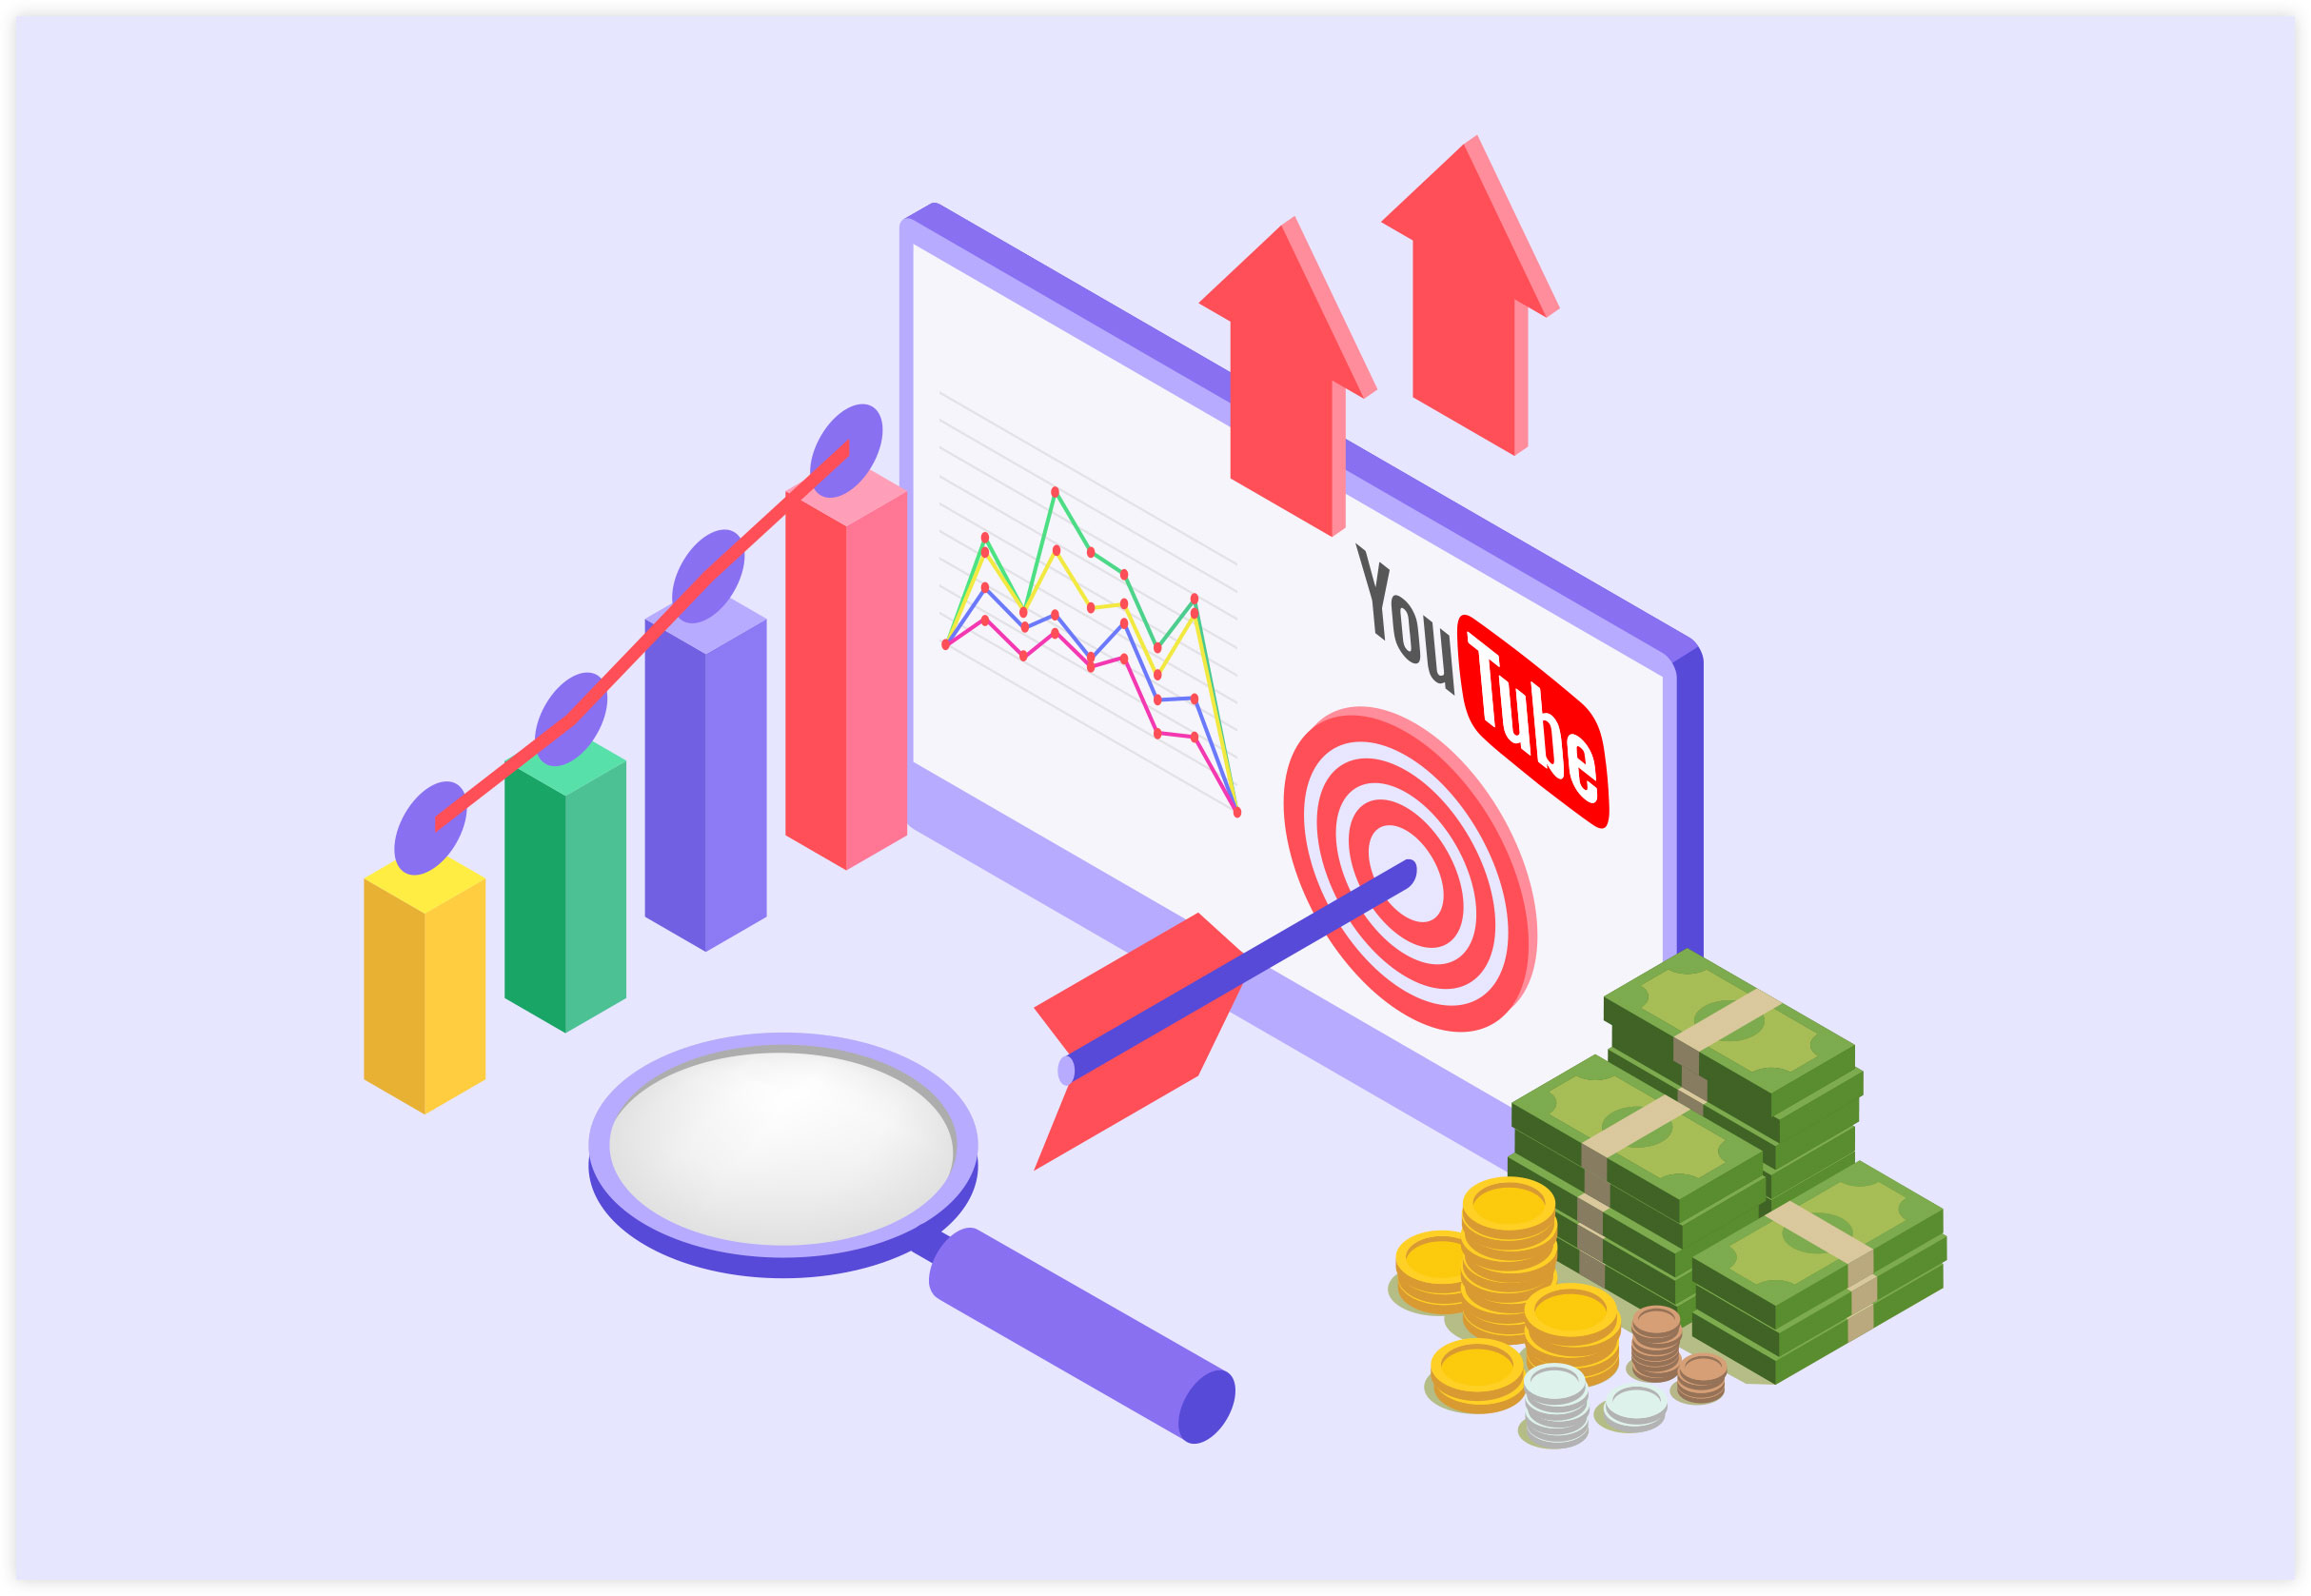 YouTube Marketing - Video SEO Strategy Illustration